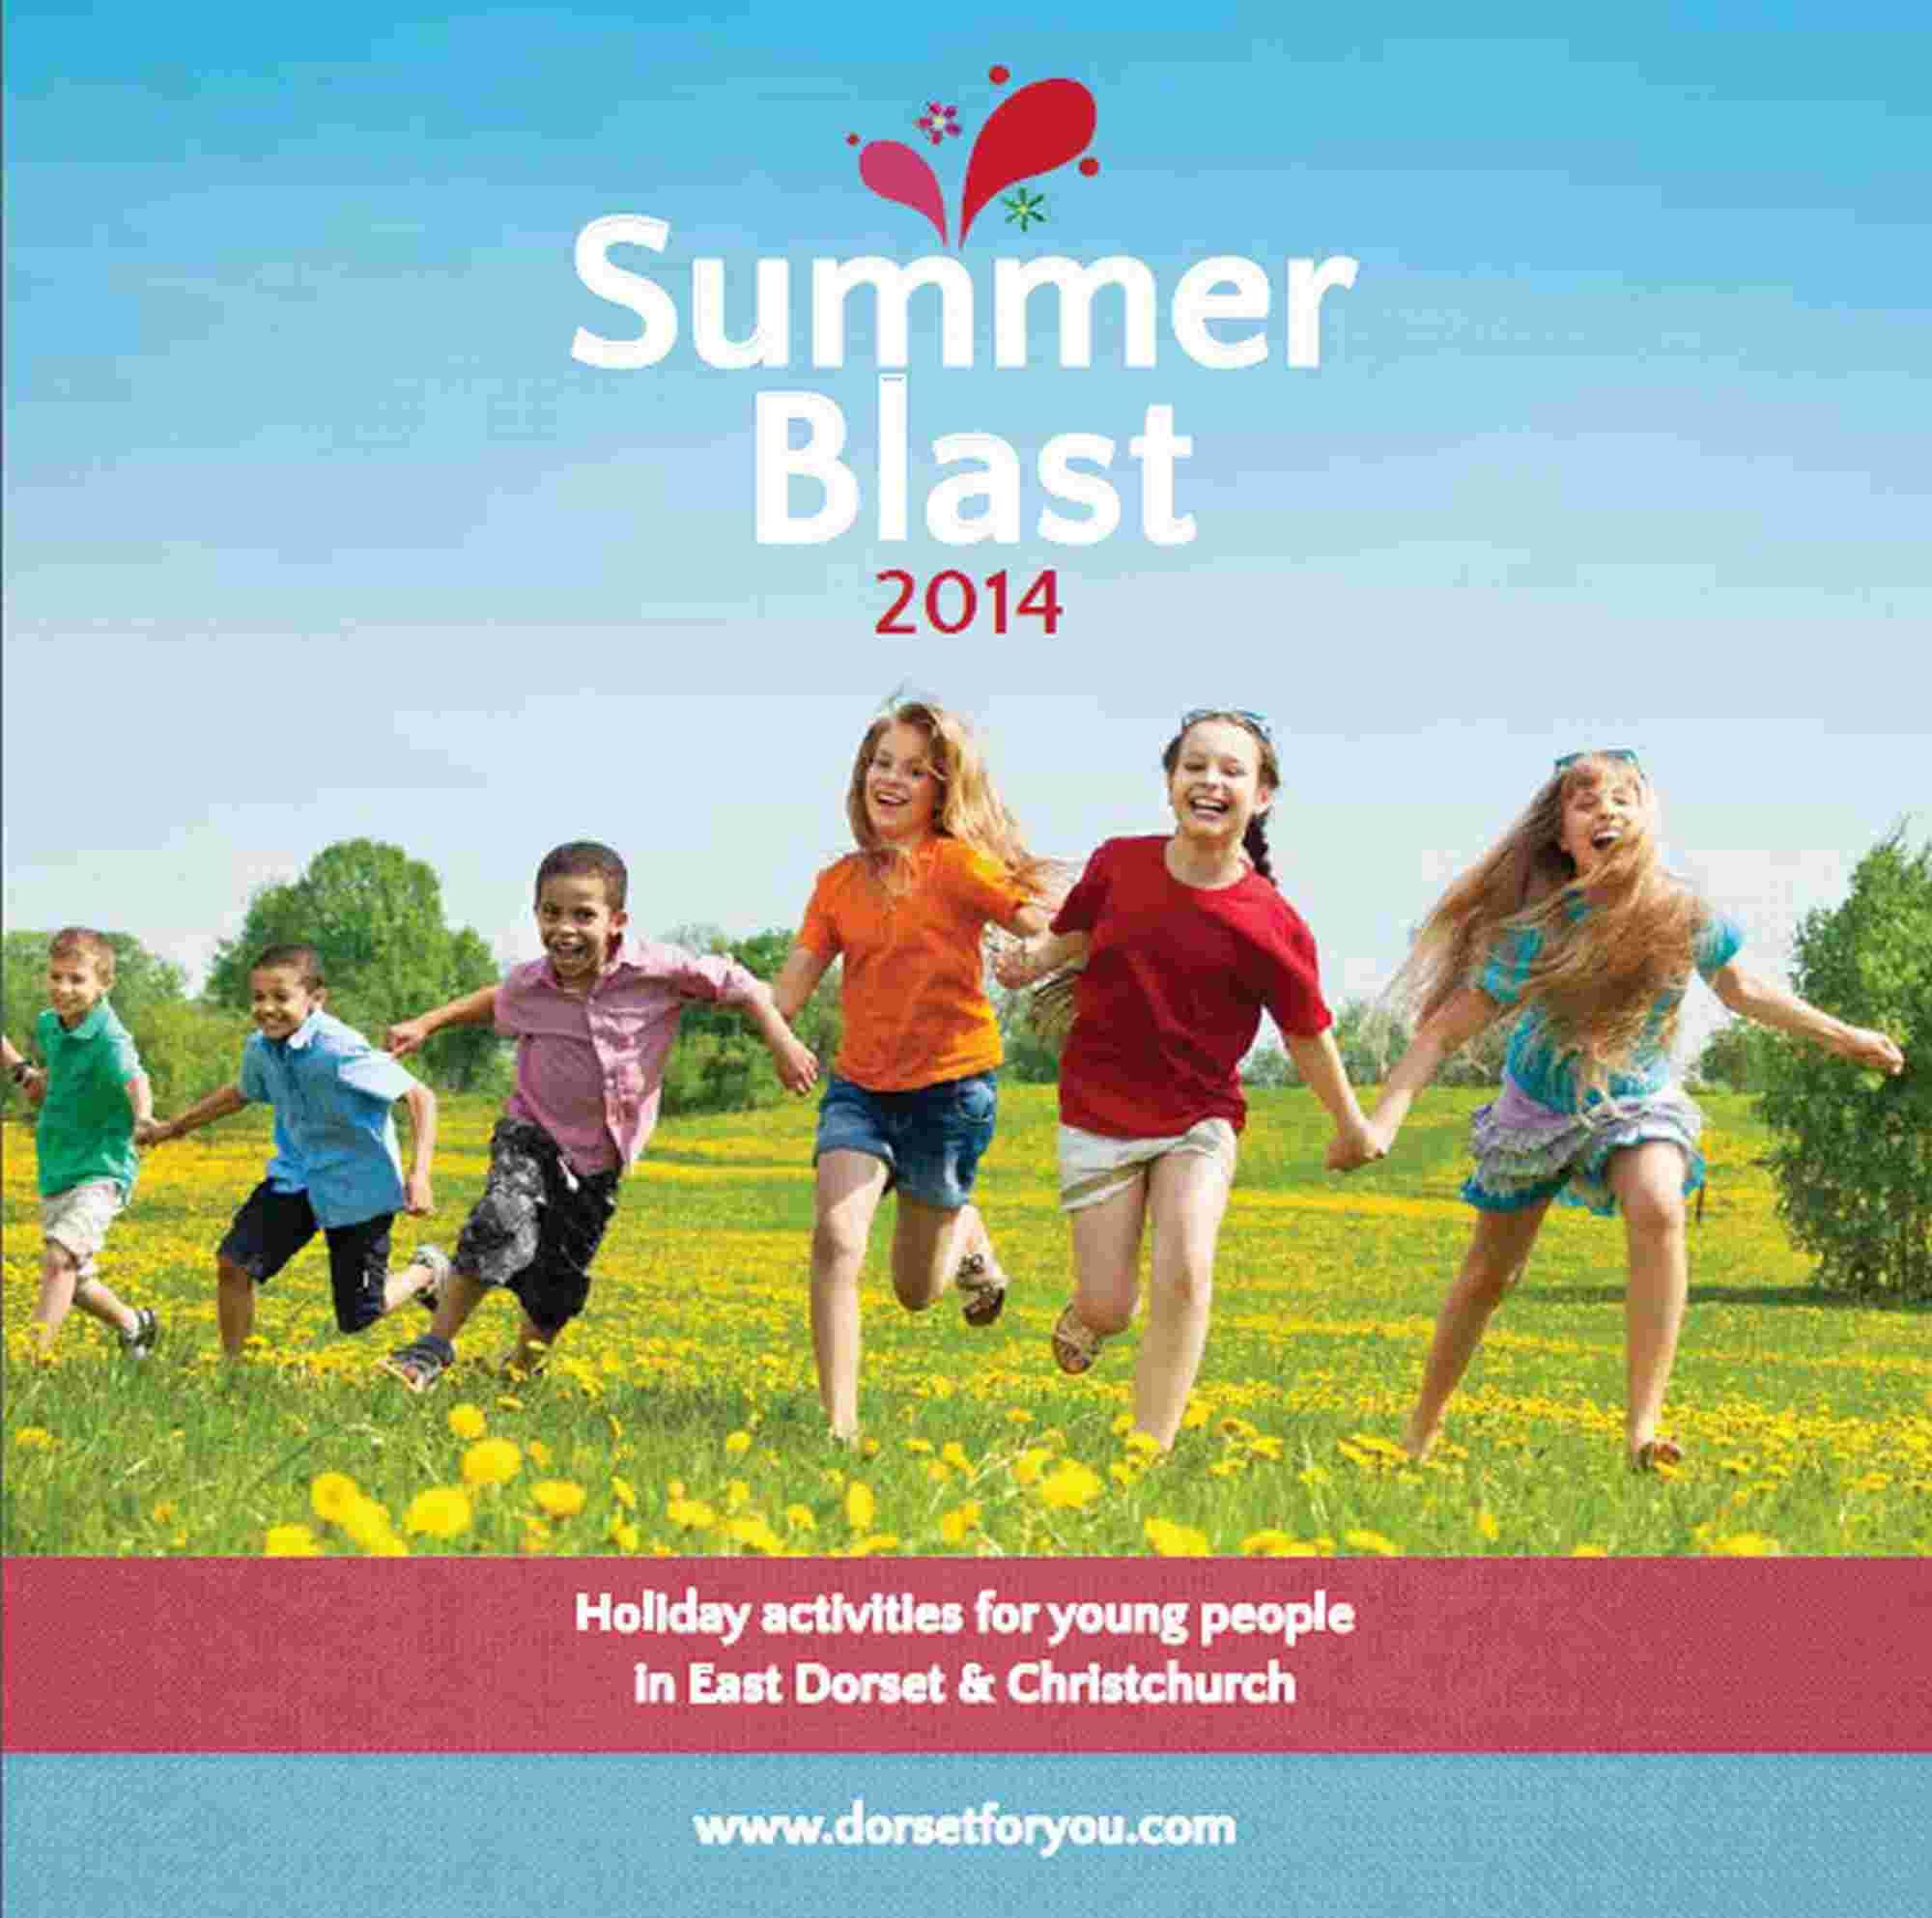 New leaflet detailing fun activities for kids in East Dorset this summer